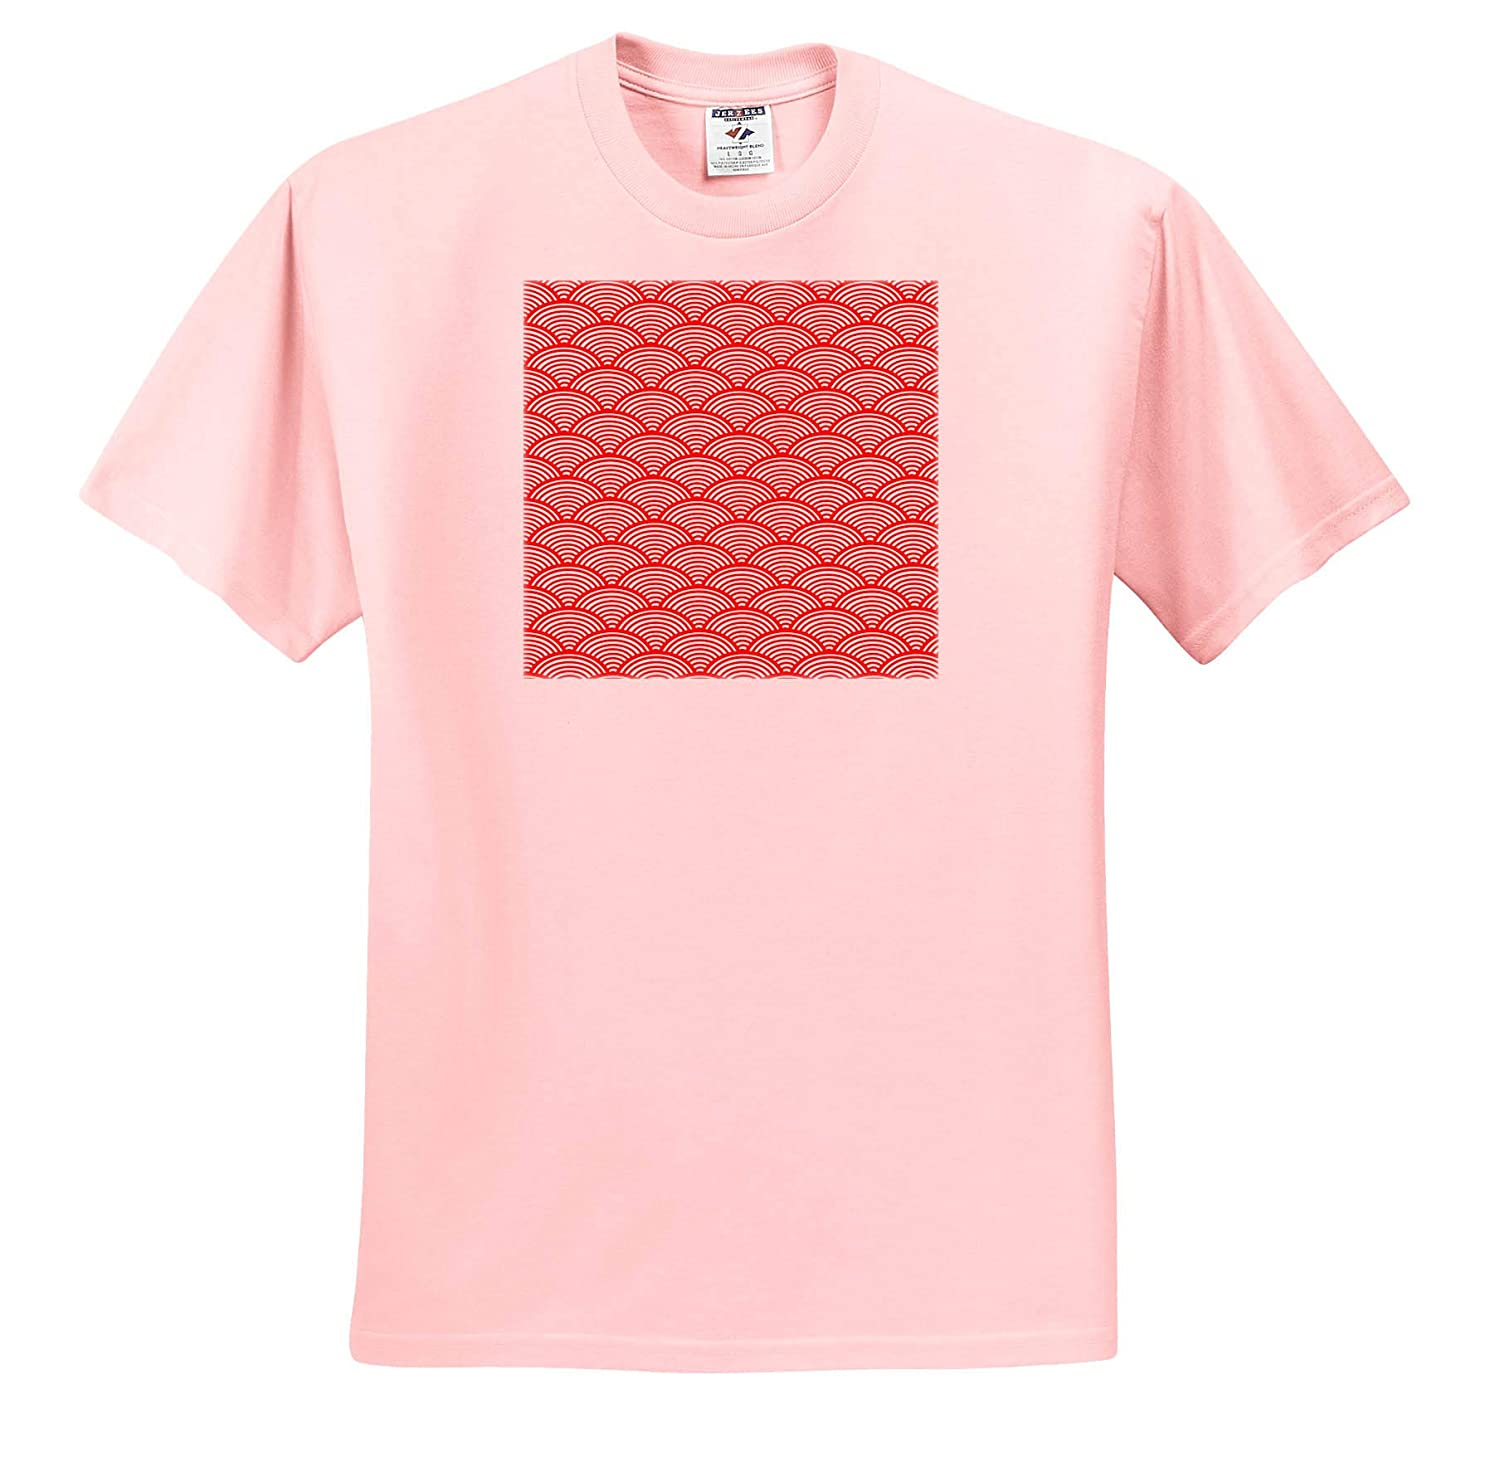 Pattern Geometrical Image of red Geometric Wave or Scale Pattern 3dRose Alexis Design Adult T-Shirt XL ts/_320008